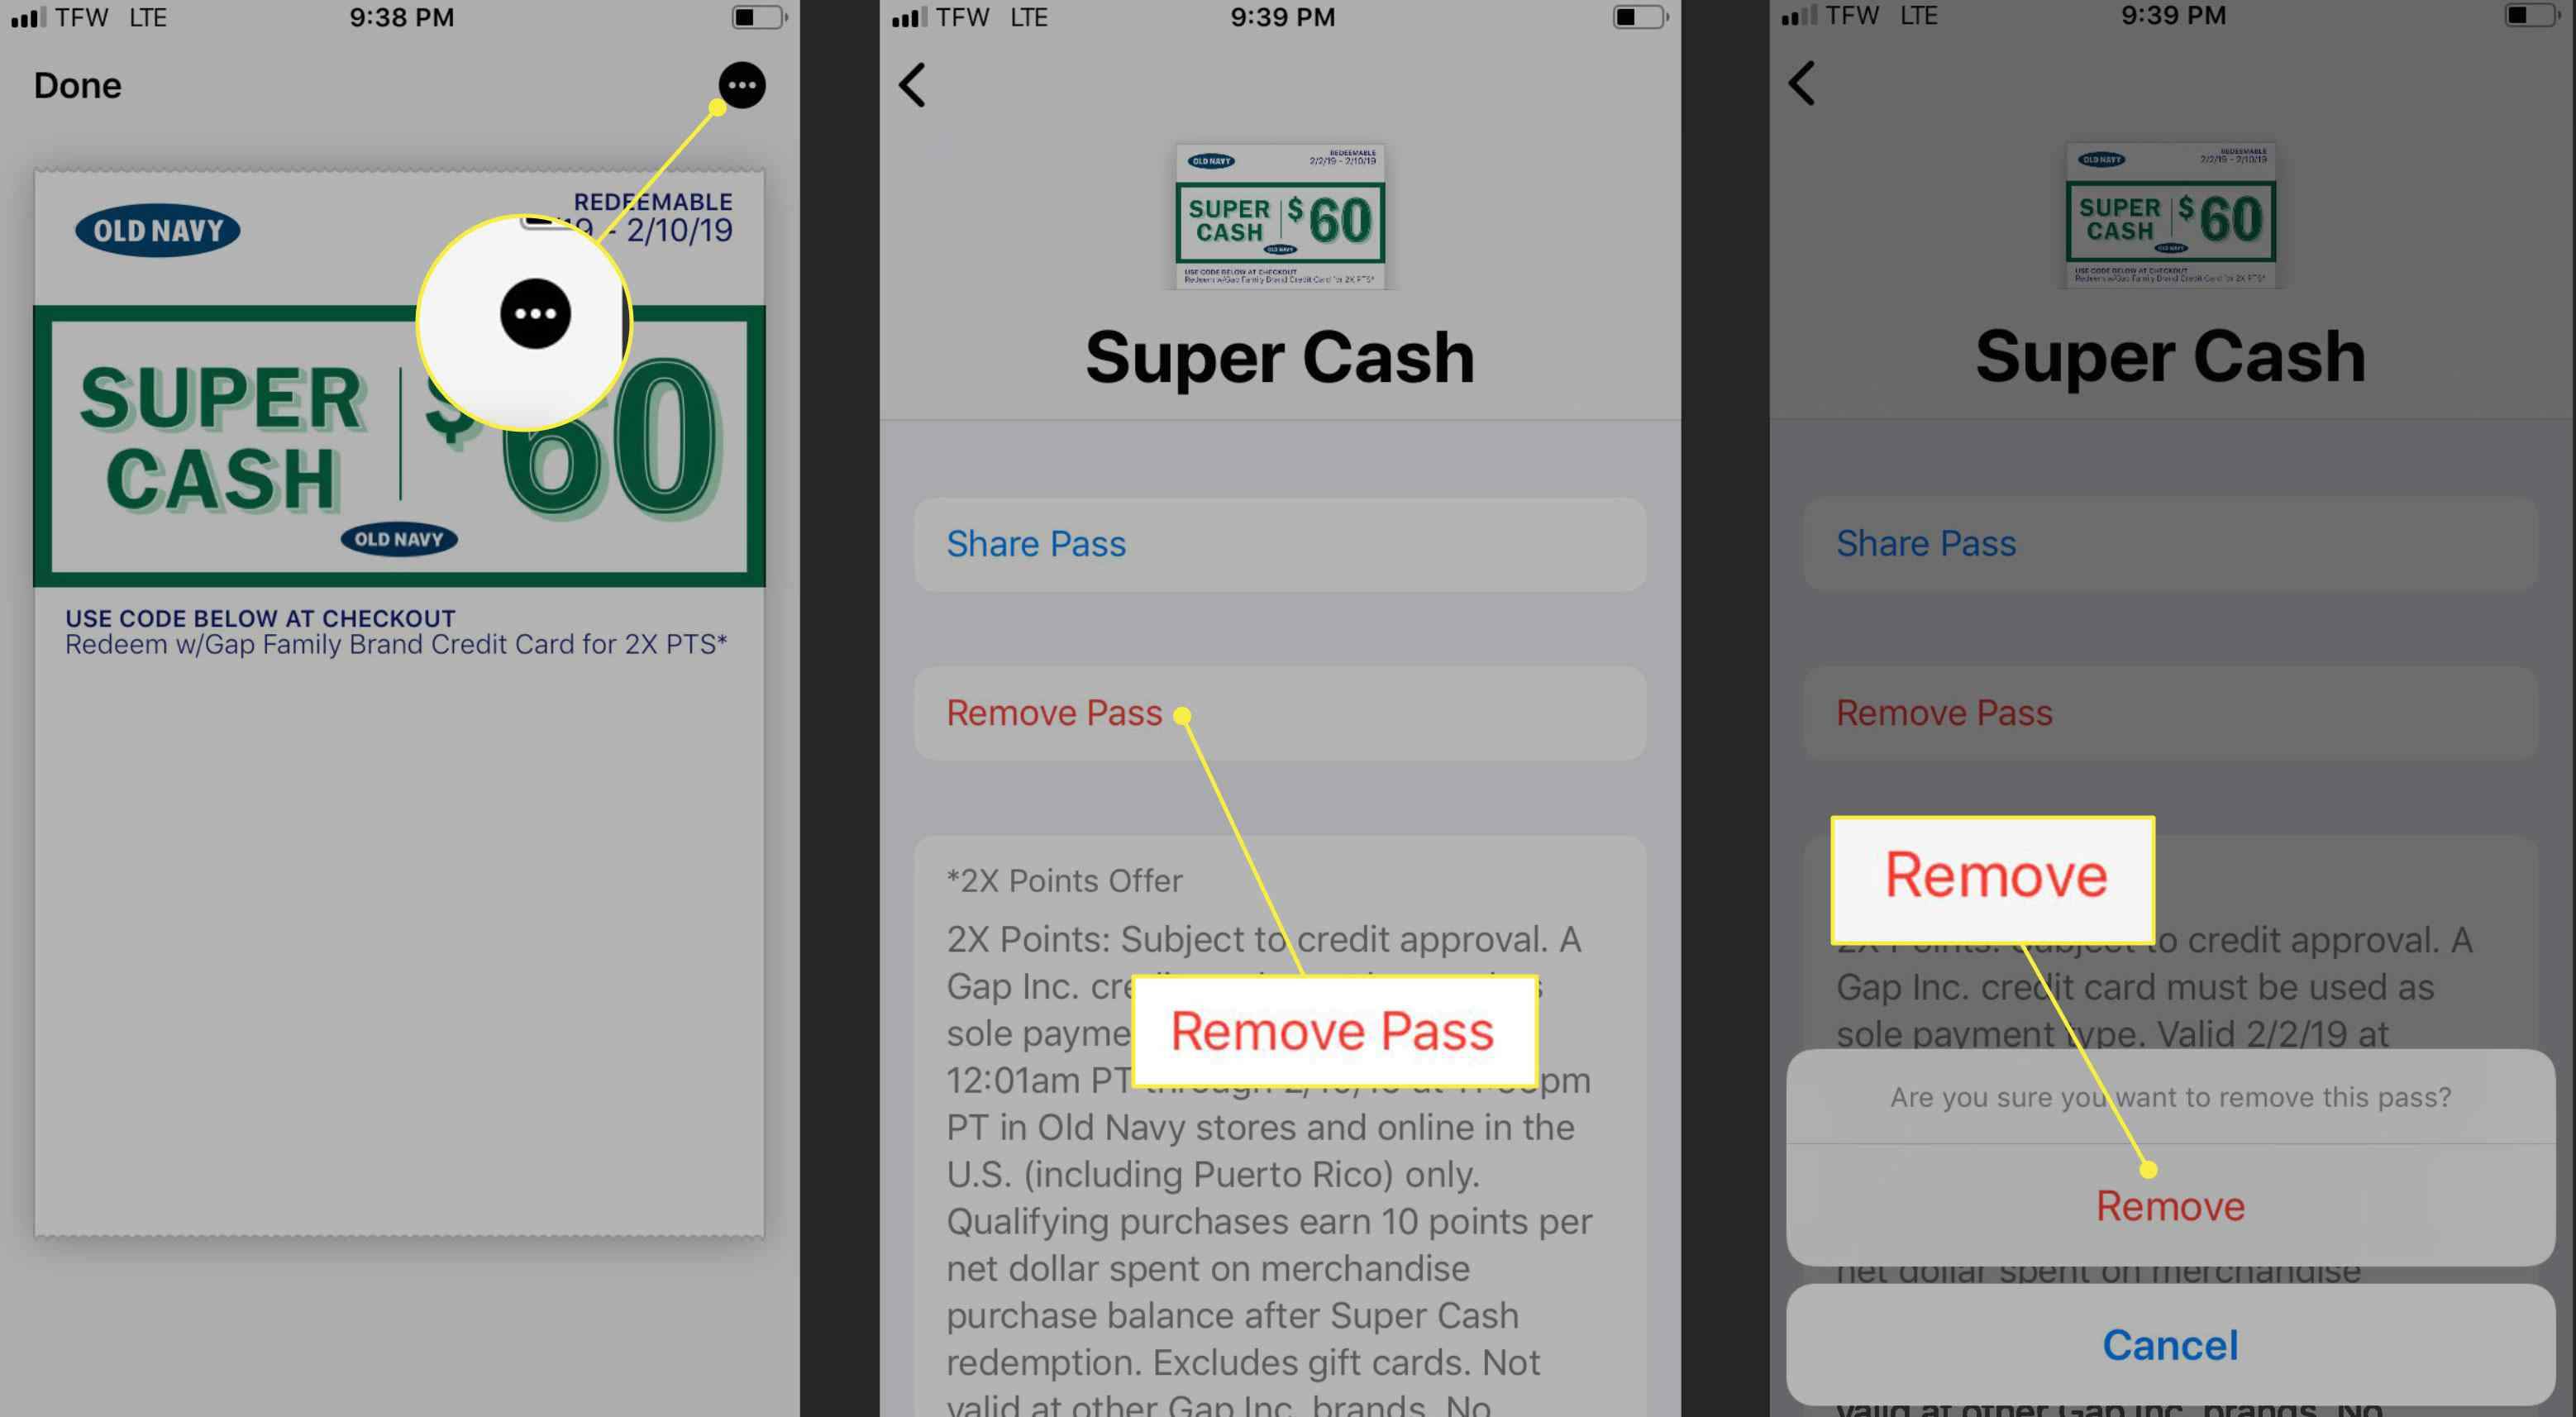 Removing a pass from Apple Wallet